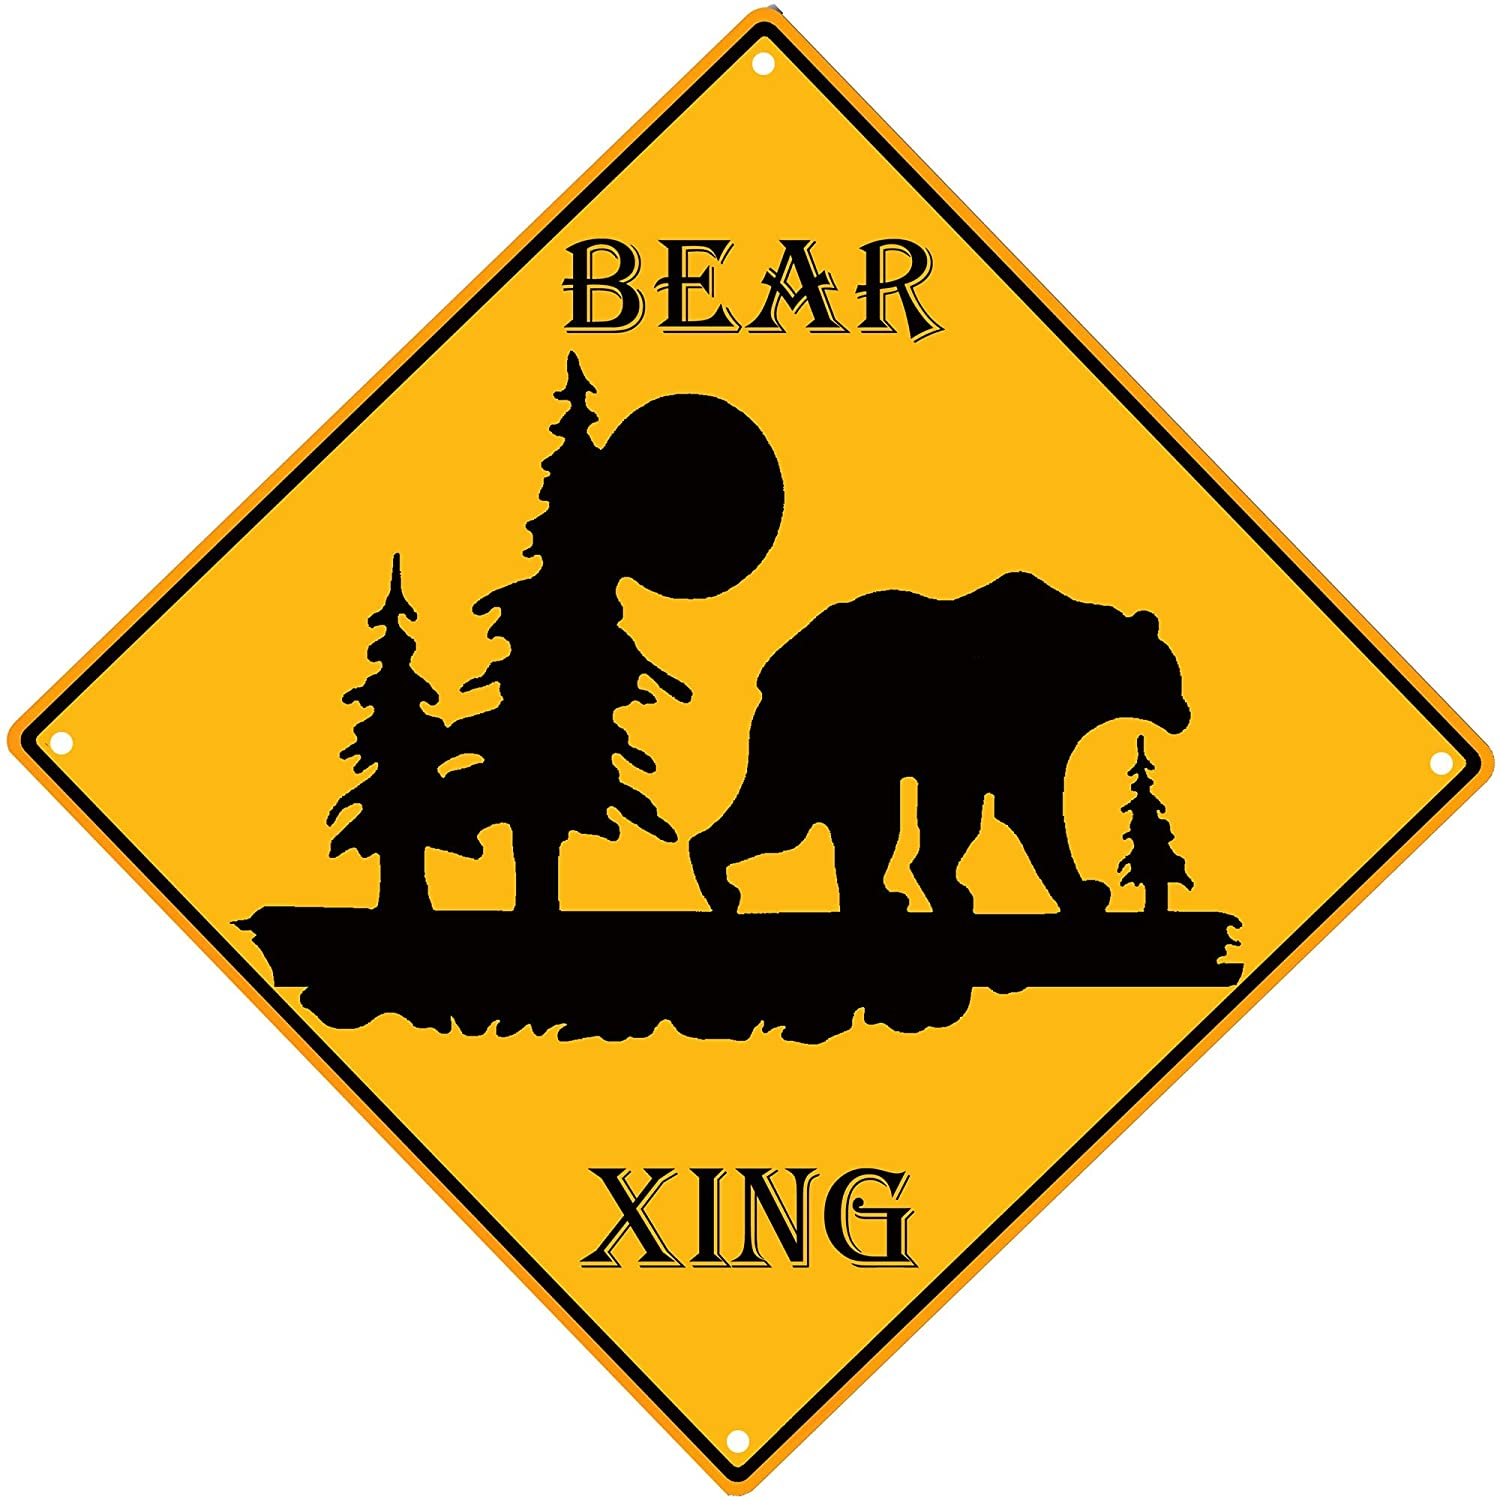 PXIYOU Funny Bear Xing Crossing Forest Danger Caution Sign Lodge Decor for Man Cave Cafe Bar Pub Beer Wall Decor 12X12Inch